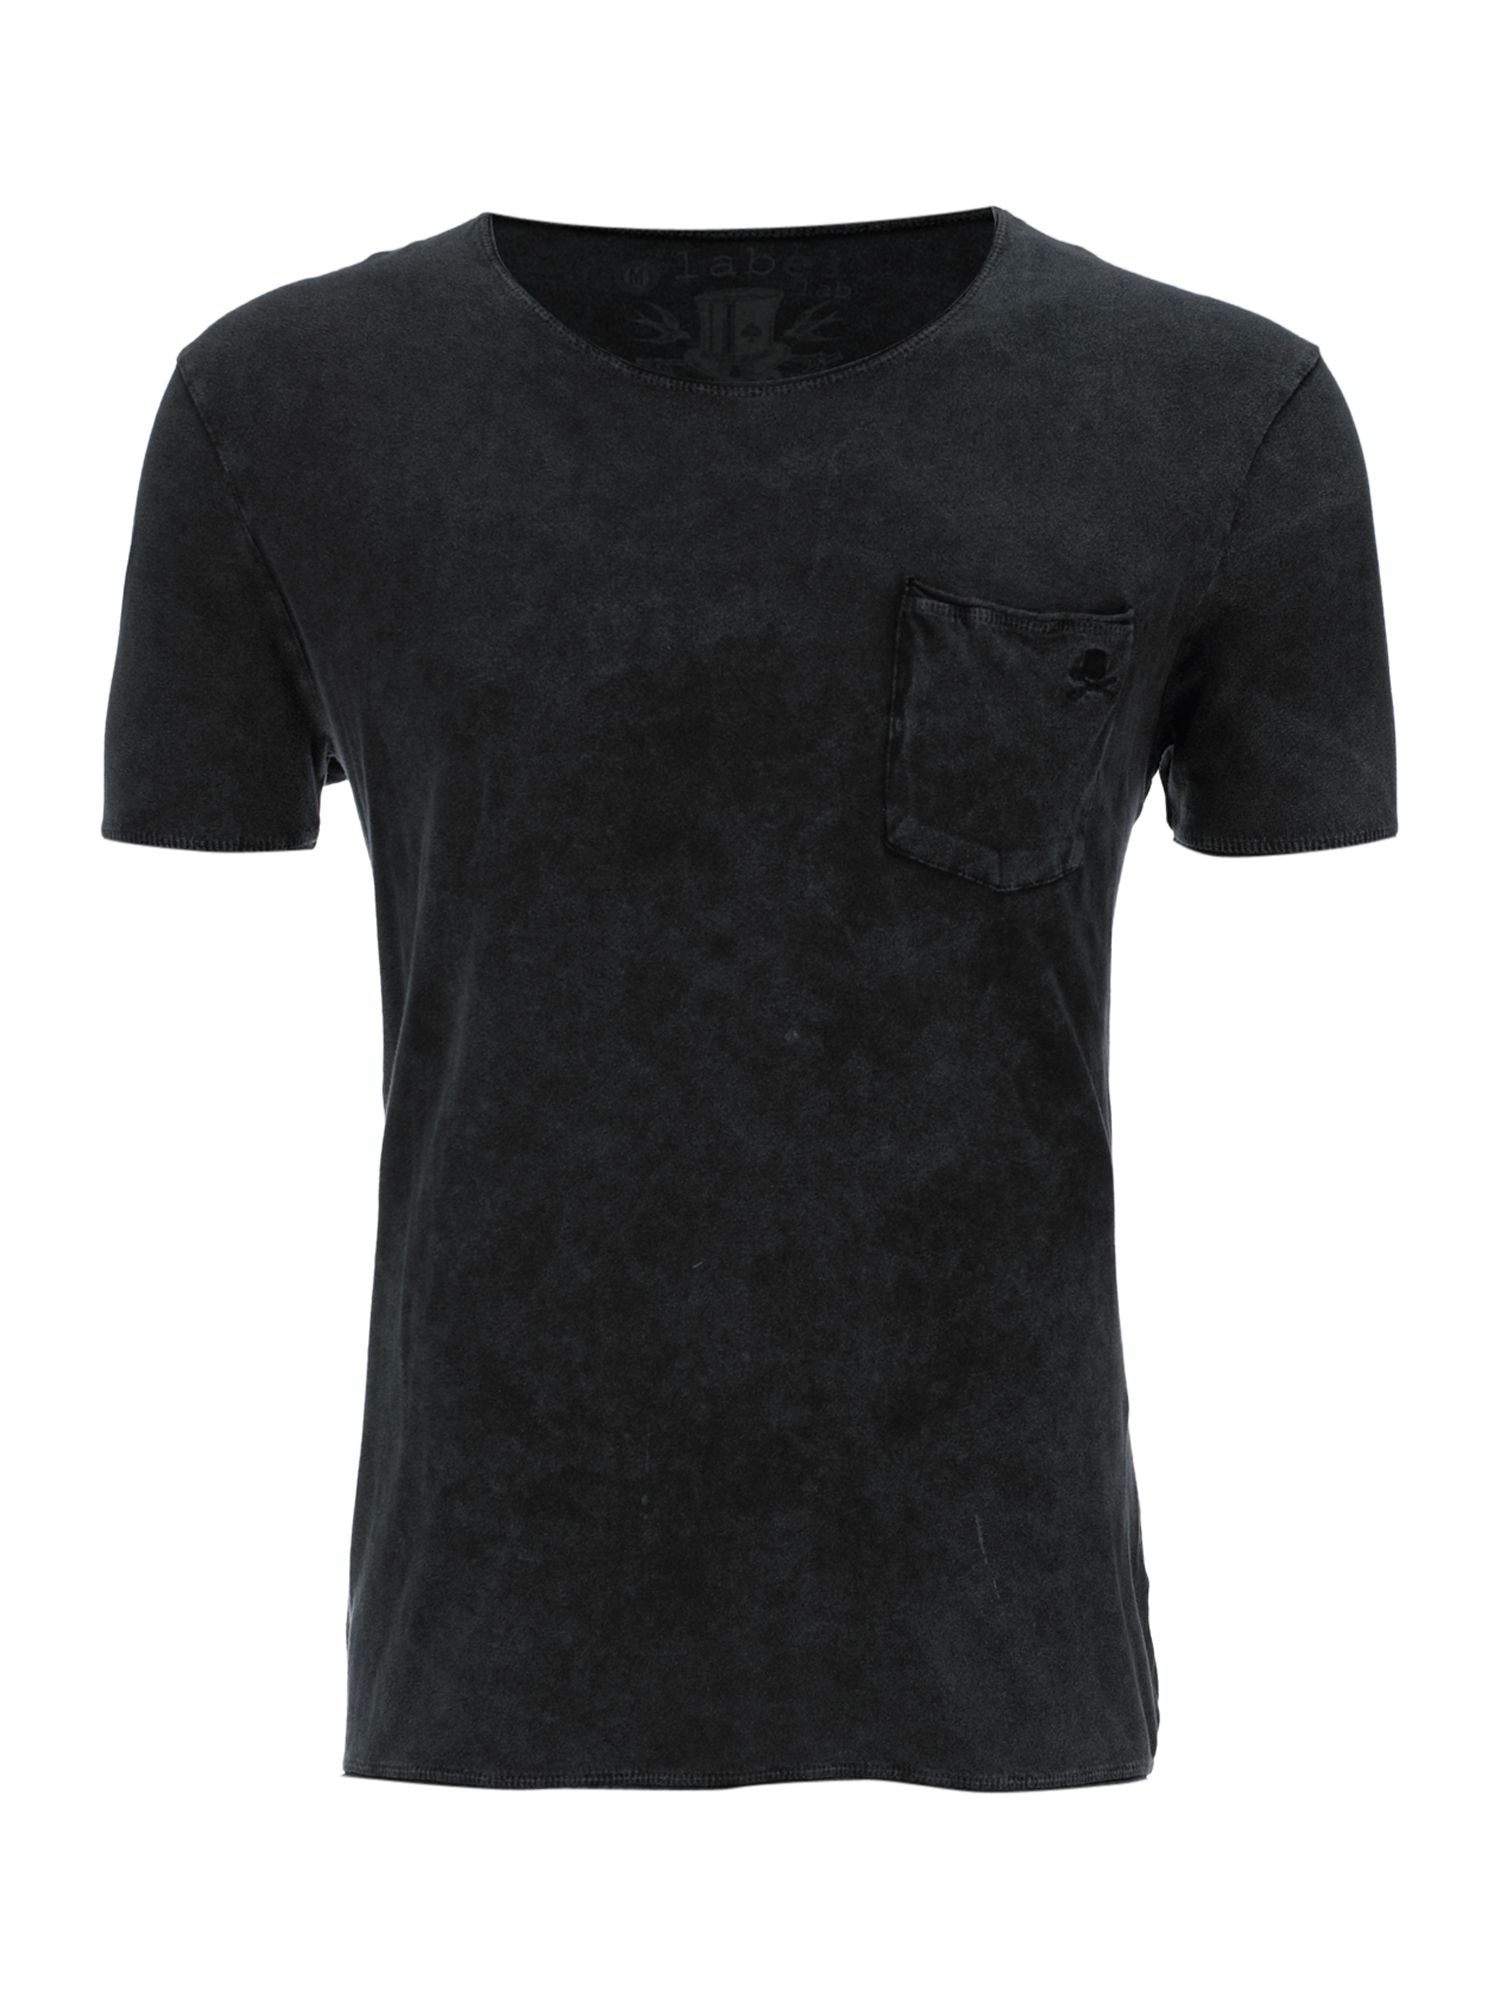 Label Lab Cult crew snow wash T-shirt - Black product image